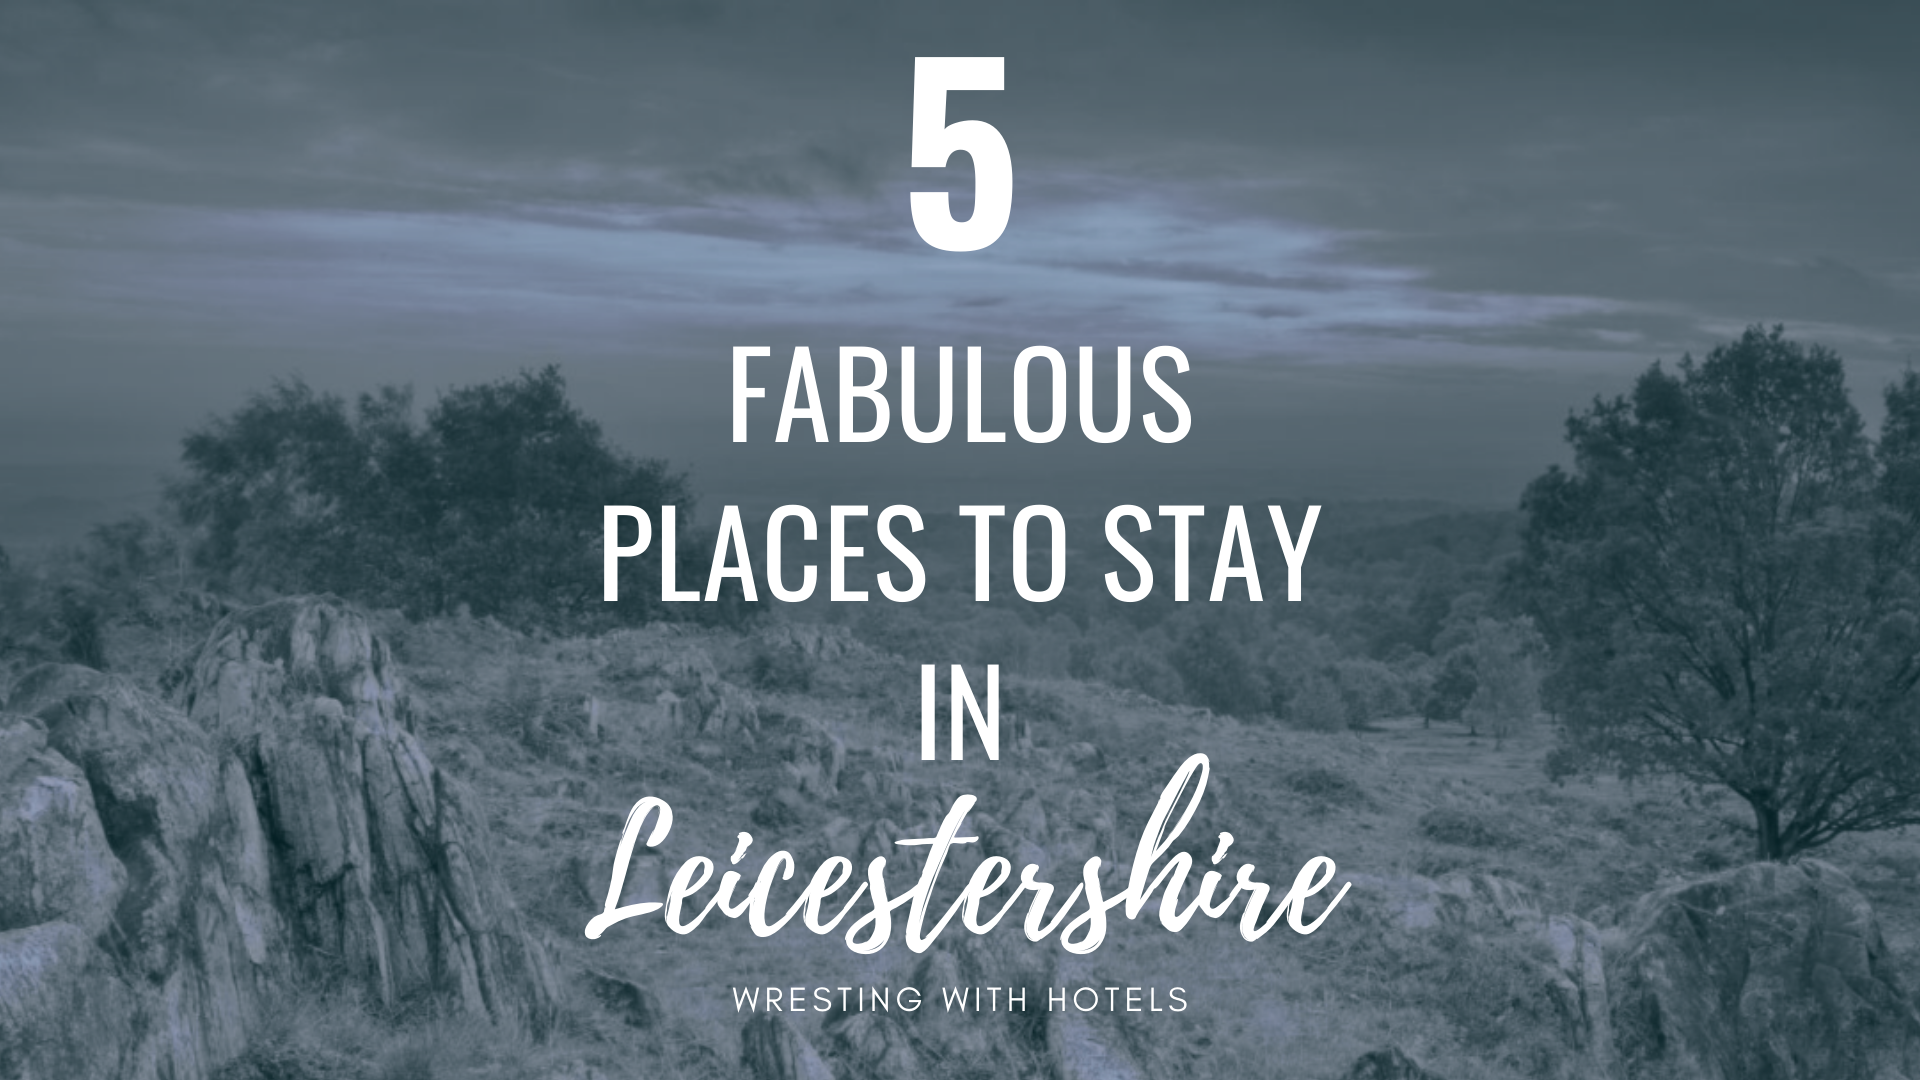 5 Fabulous Places to stay in Leicestershire